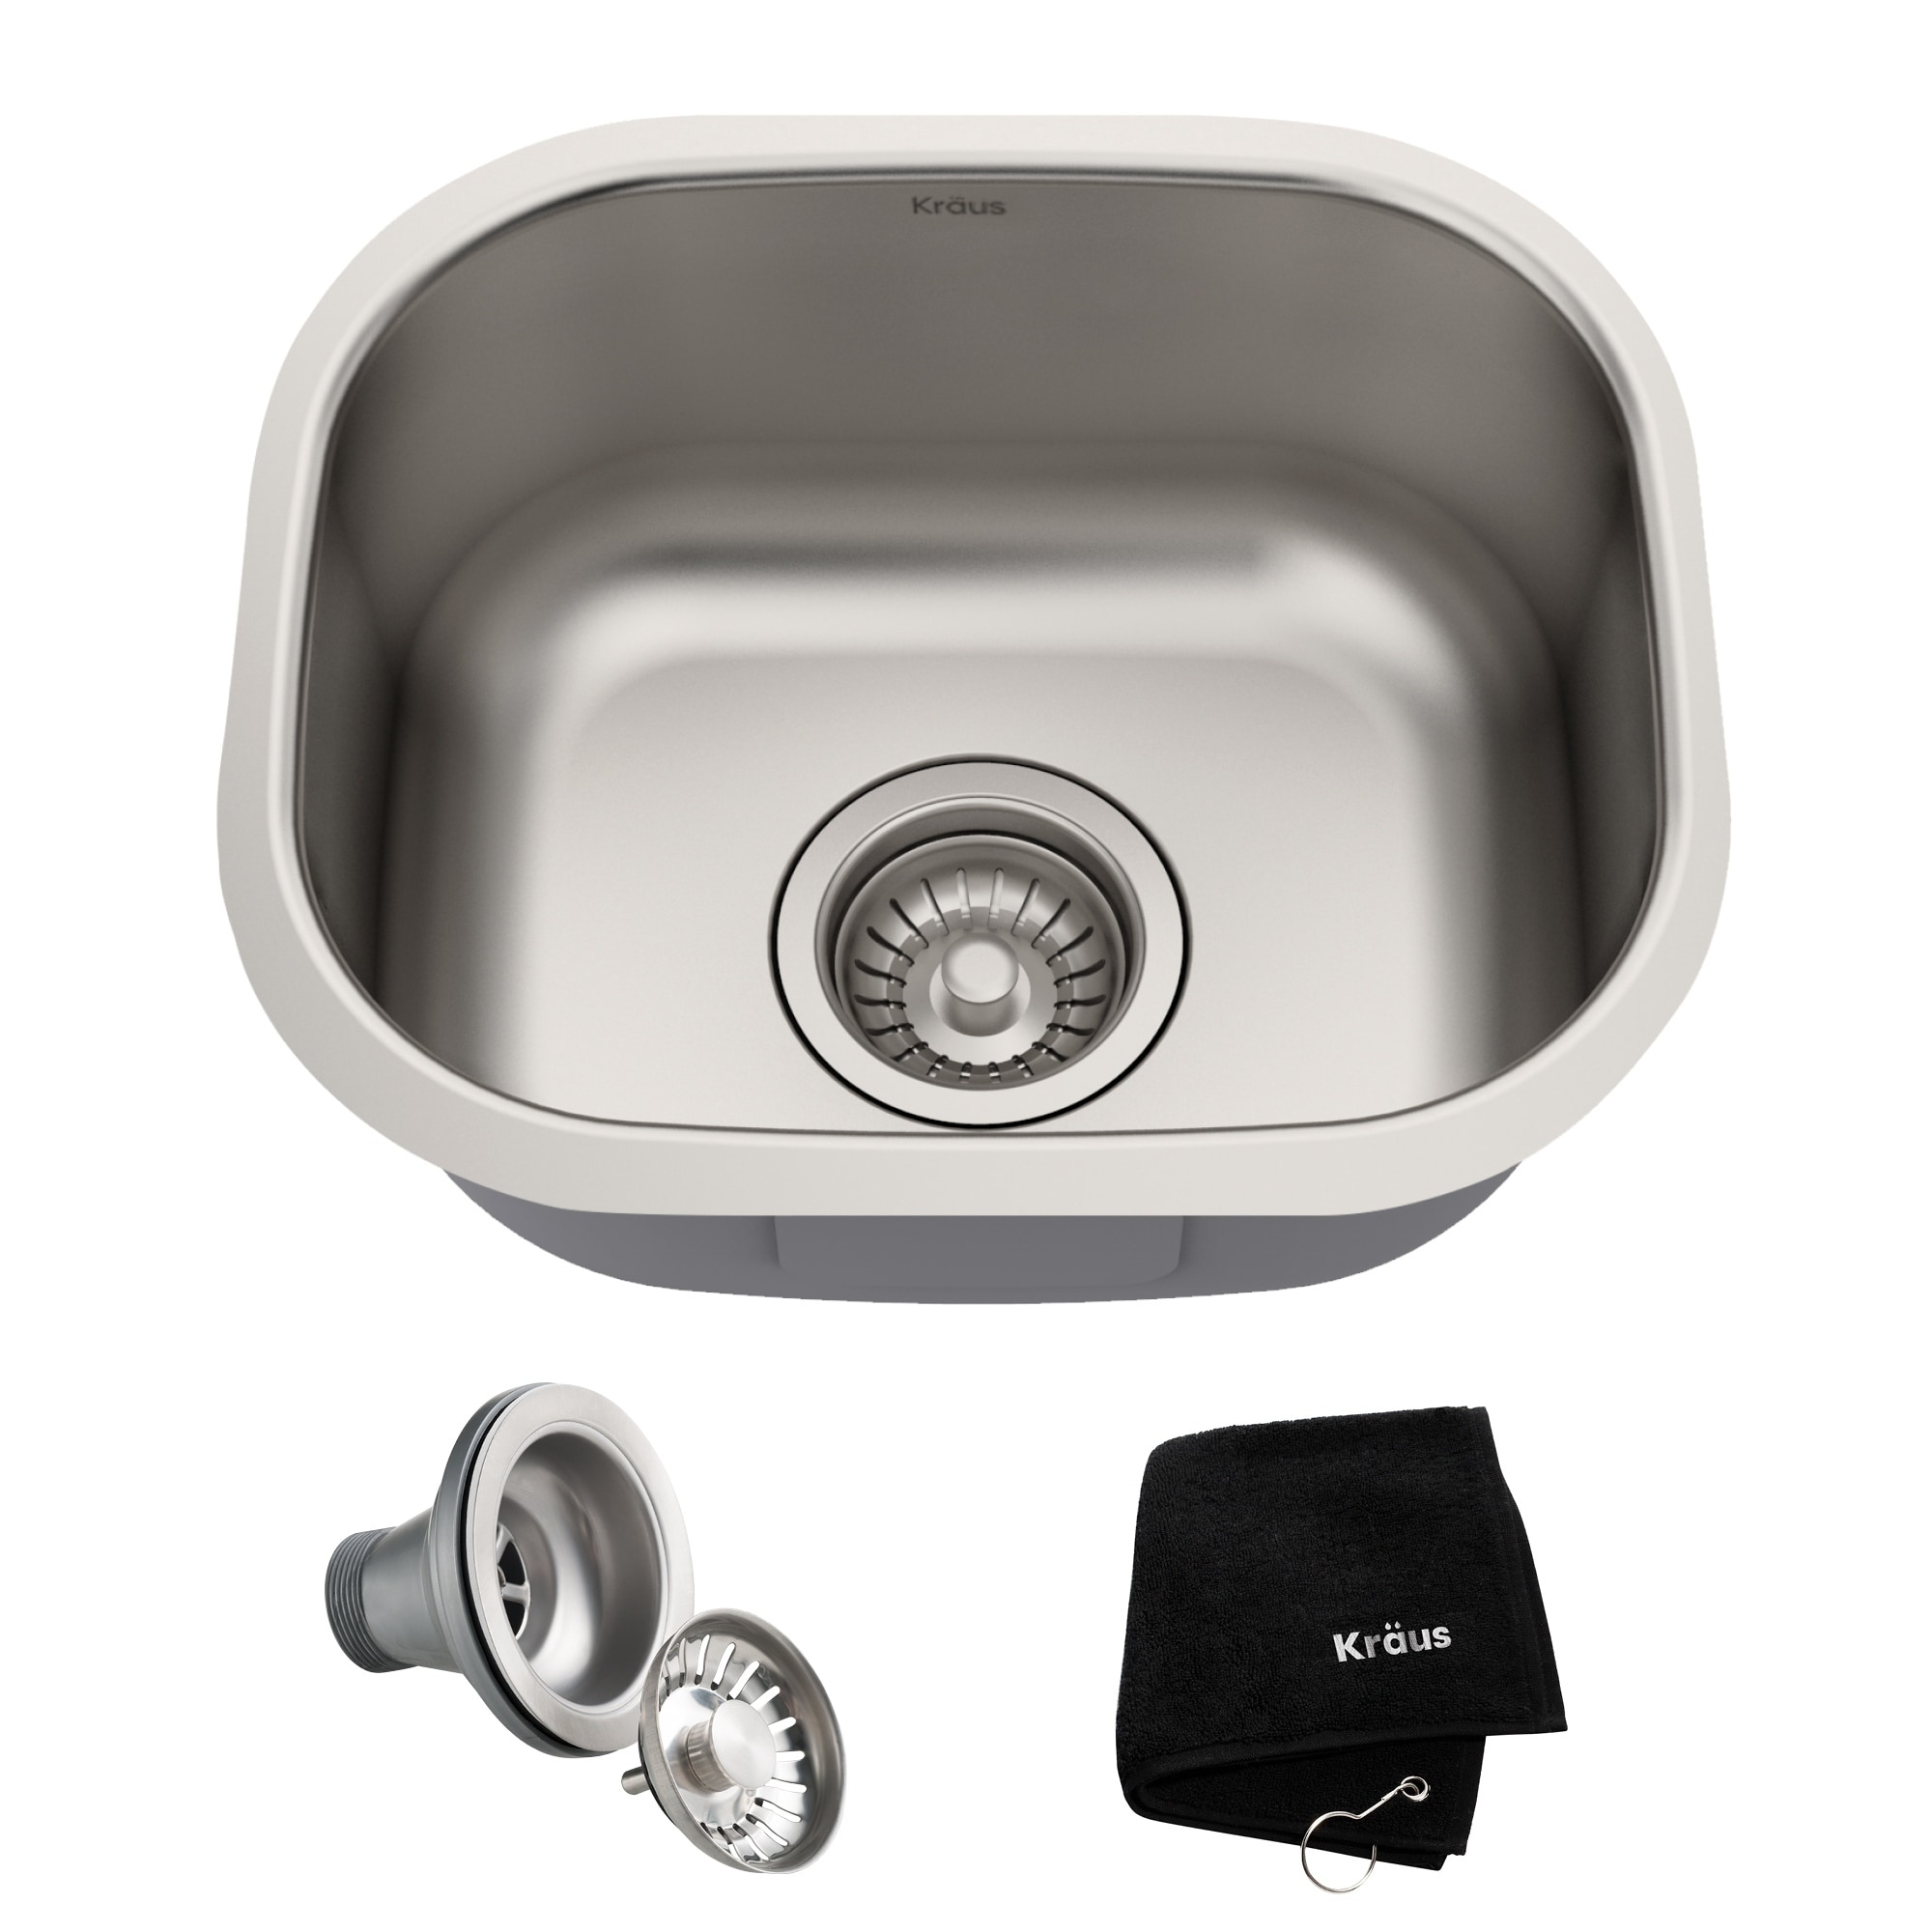 Kraus Kbu17 15 Inch Undermount Single Bowl 18 Gauge Stainless Steel Bar Sink With Noisedefend Soundproofing On Free Shipping Today